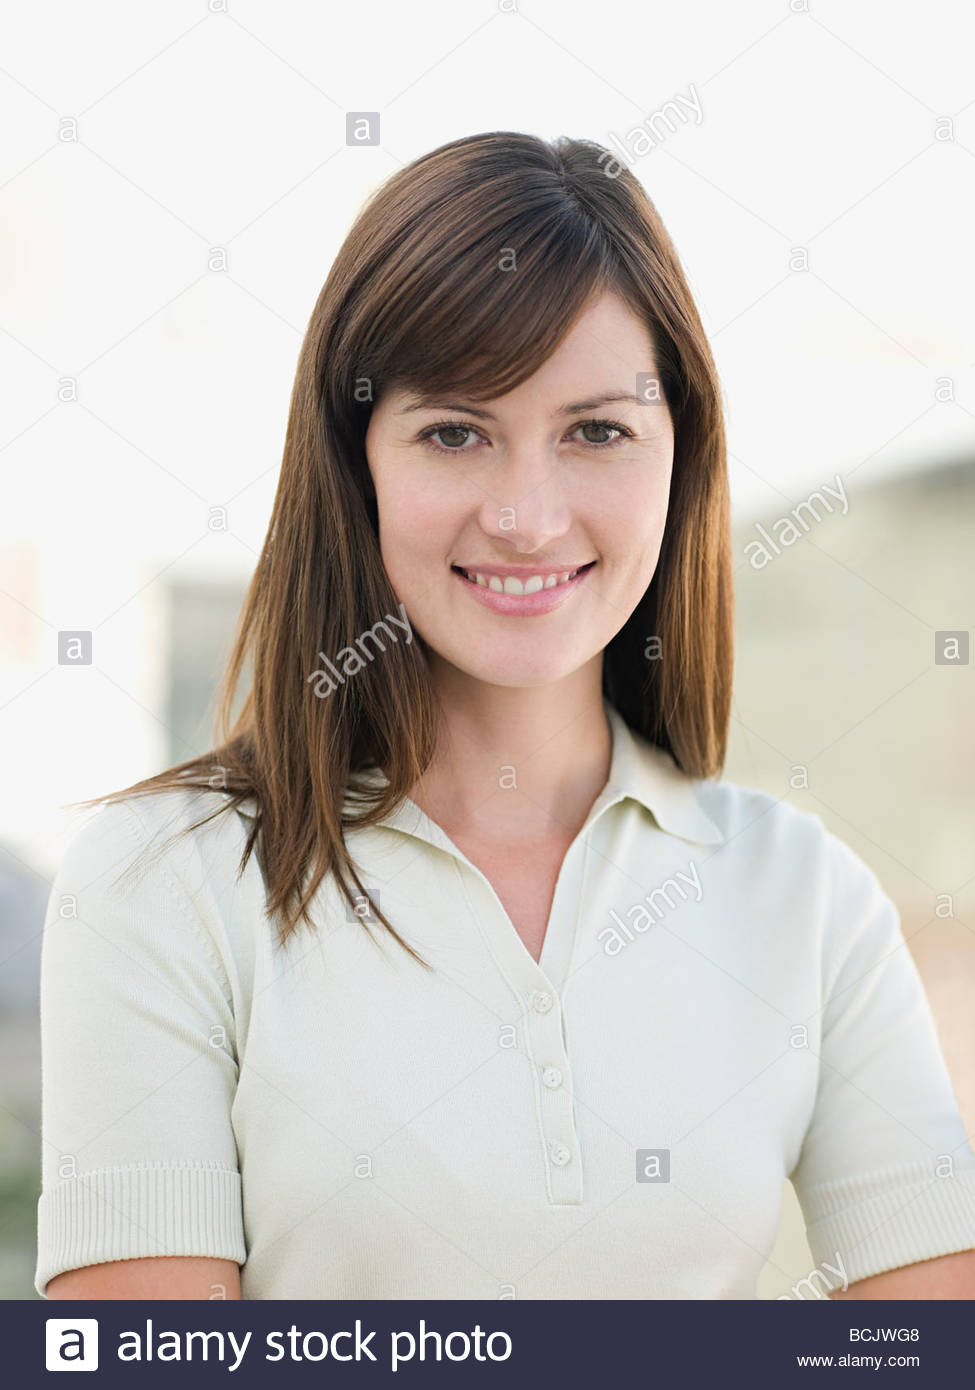 Portrait of smiling young woman standing outside - Stock Image